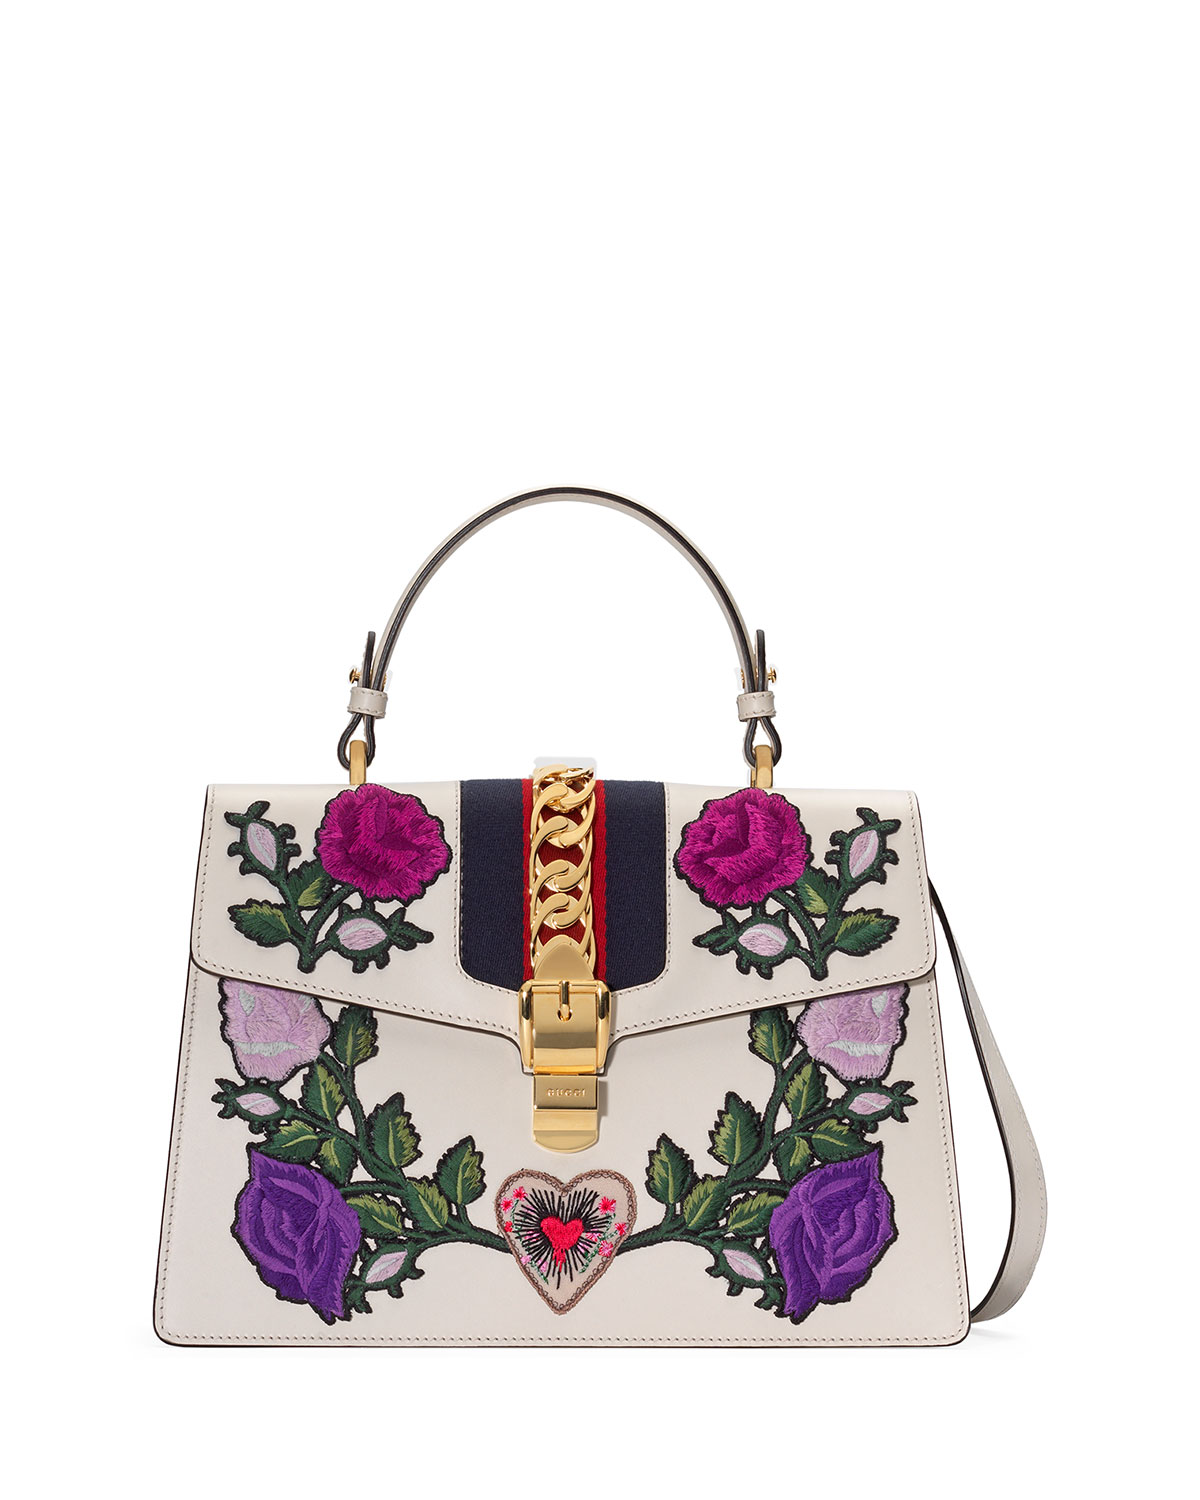 2a2cf3f92af Gucci Sylvie Medium Floral Embroidered Leather Top-Handle Satchel ...